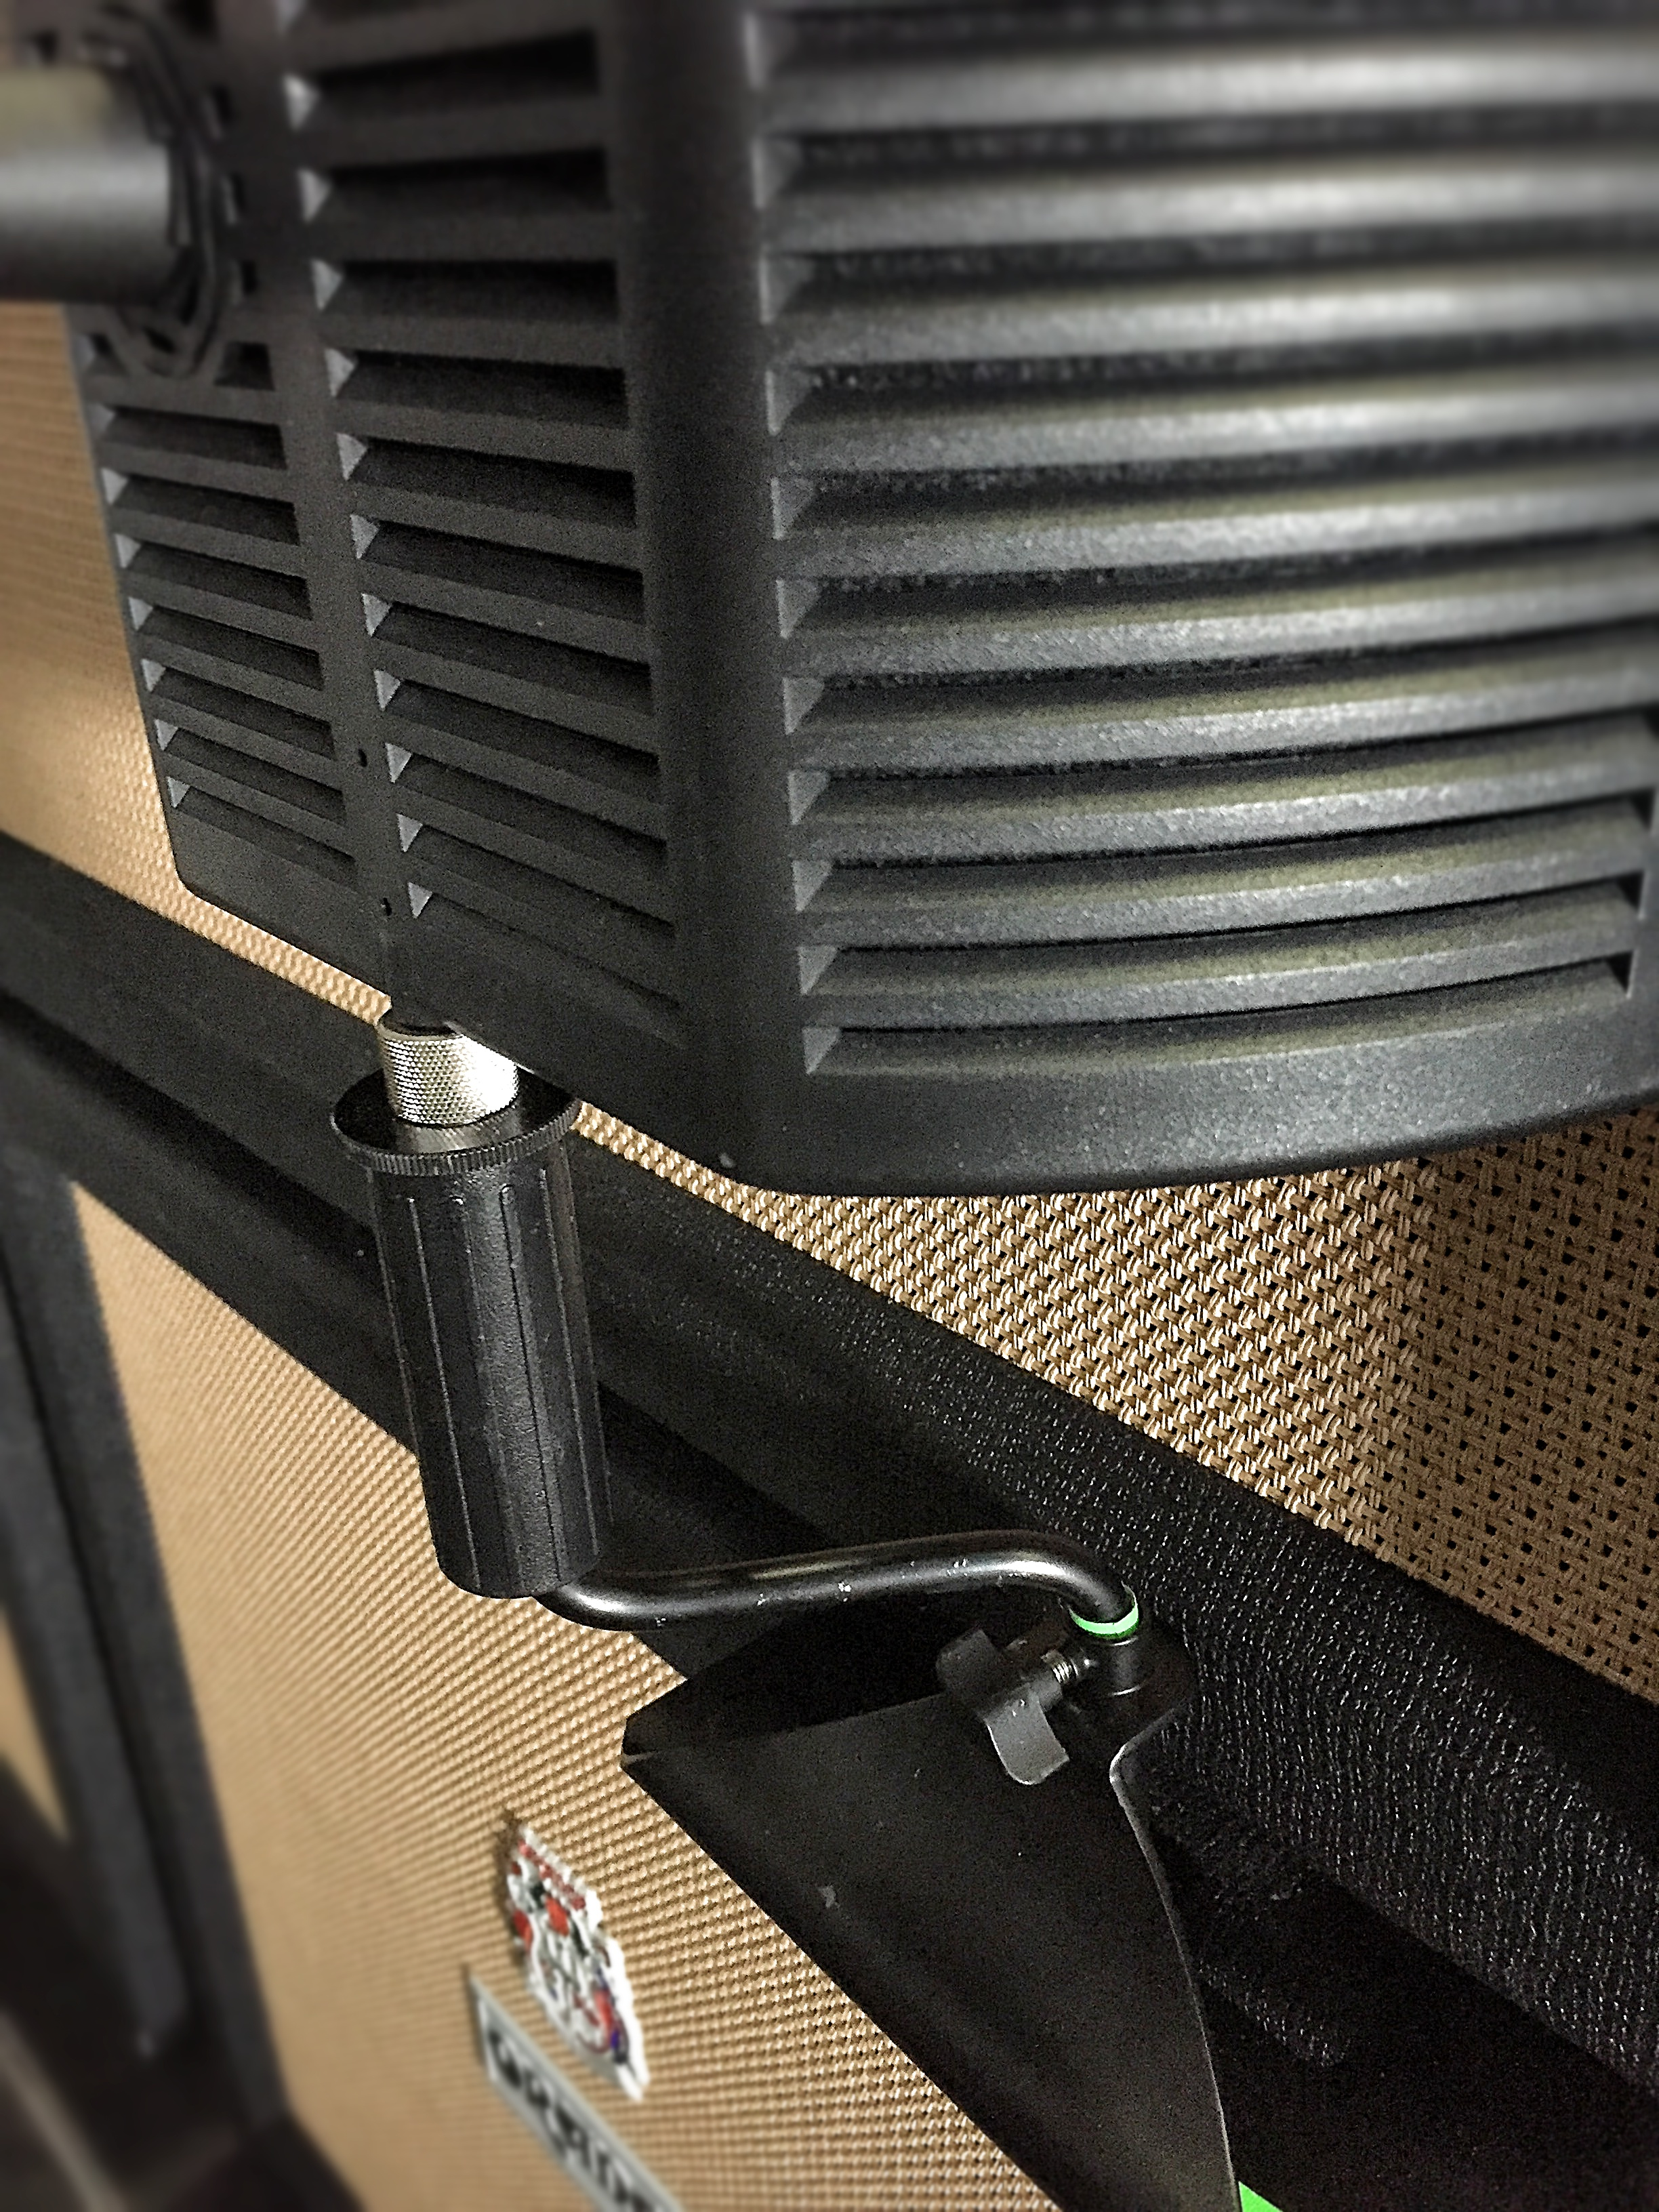 The guitaRF base fits between the cabinets, with an LP Claw used to extend the reach of the filter.